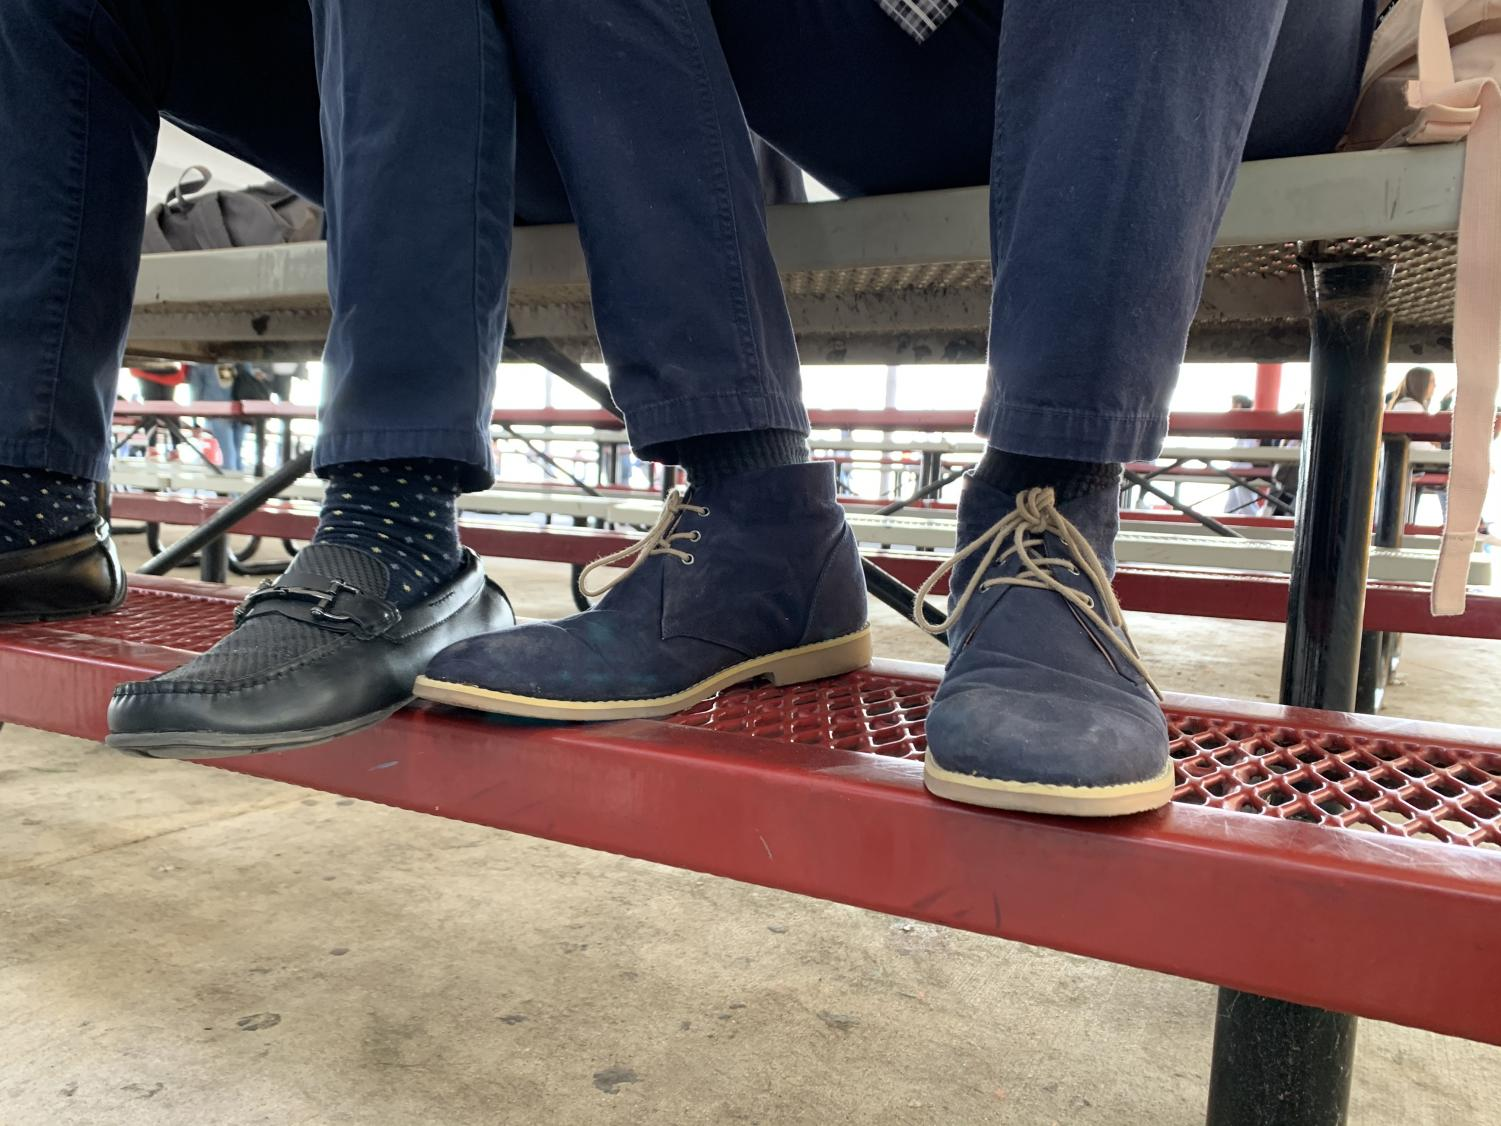 Cavaliers show off their fresh kicks in the dining pavilion, accessorizing the school uniform.